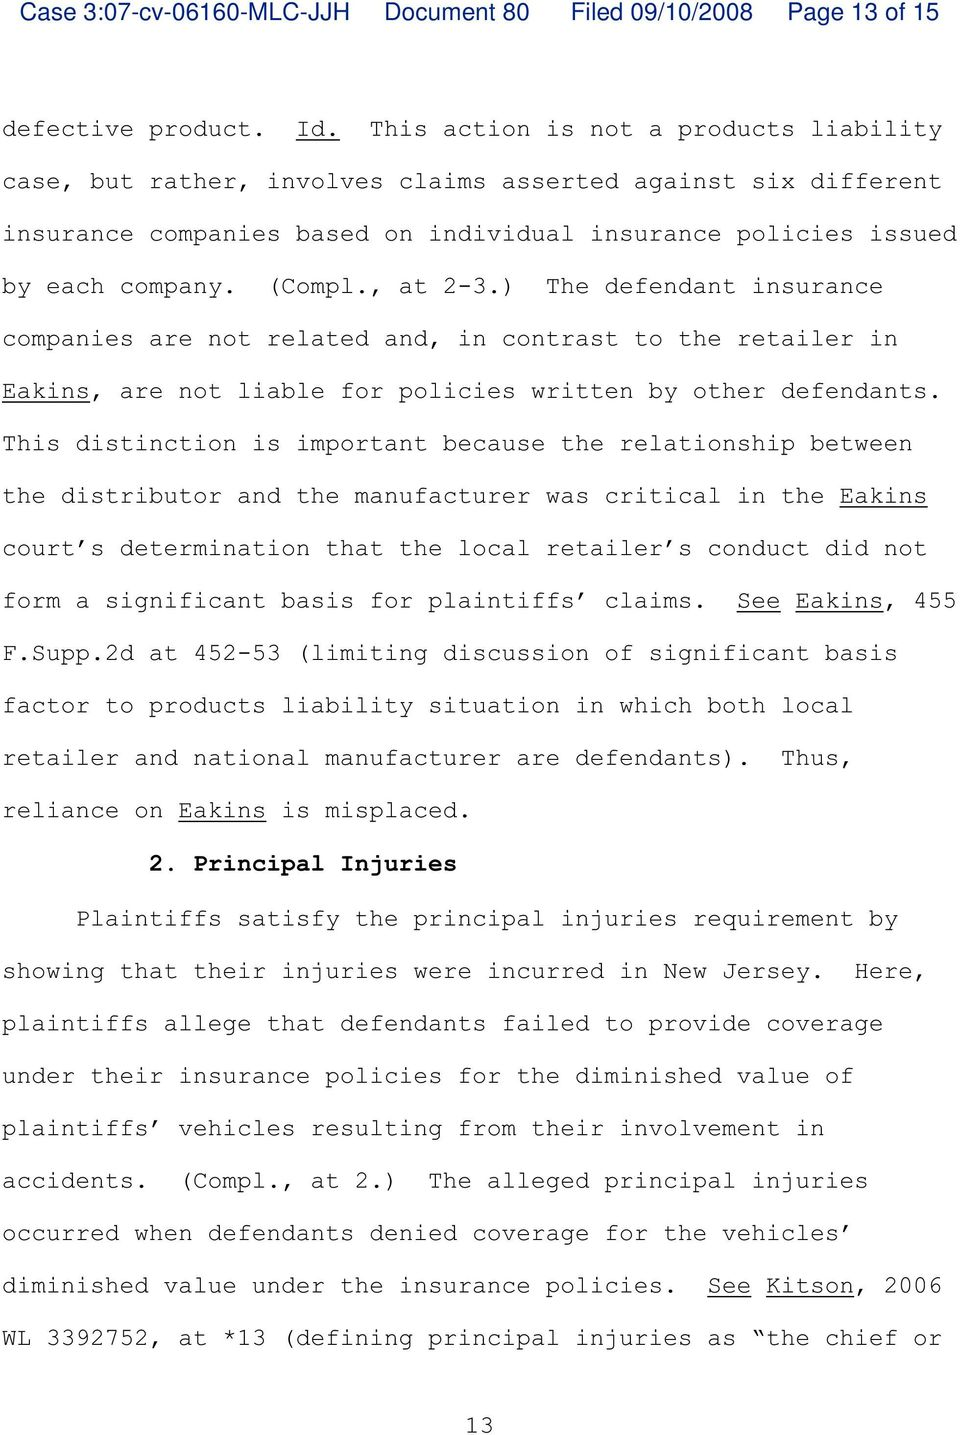 , at 2-3.) The defendant insurance companies are not related and, in contrast to the retailer in Eakins, are not liable for policies written by other defendants.